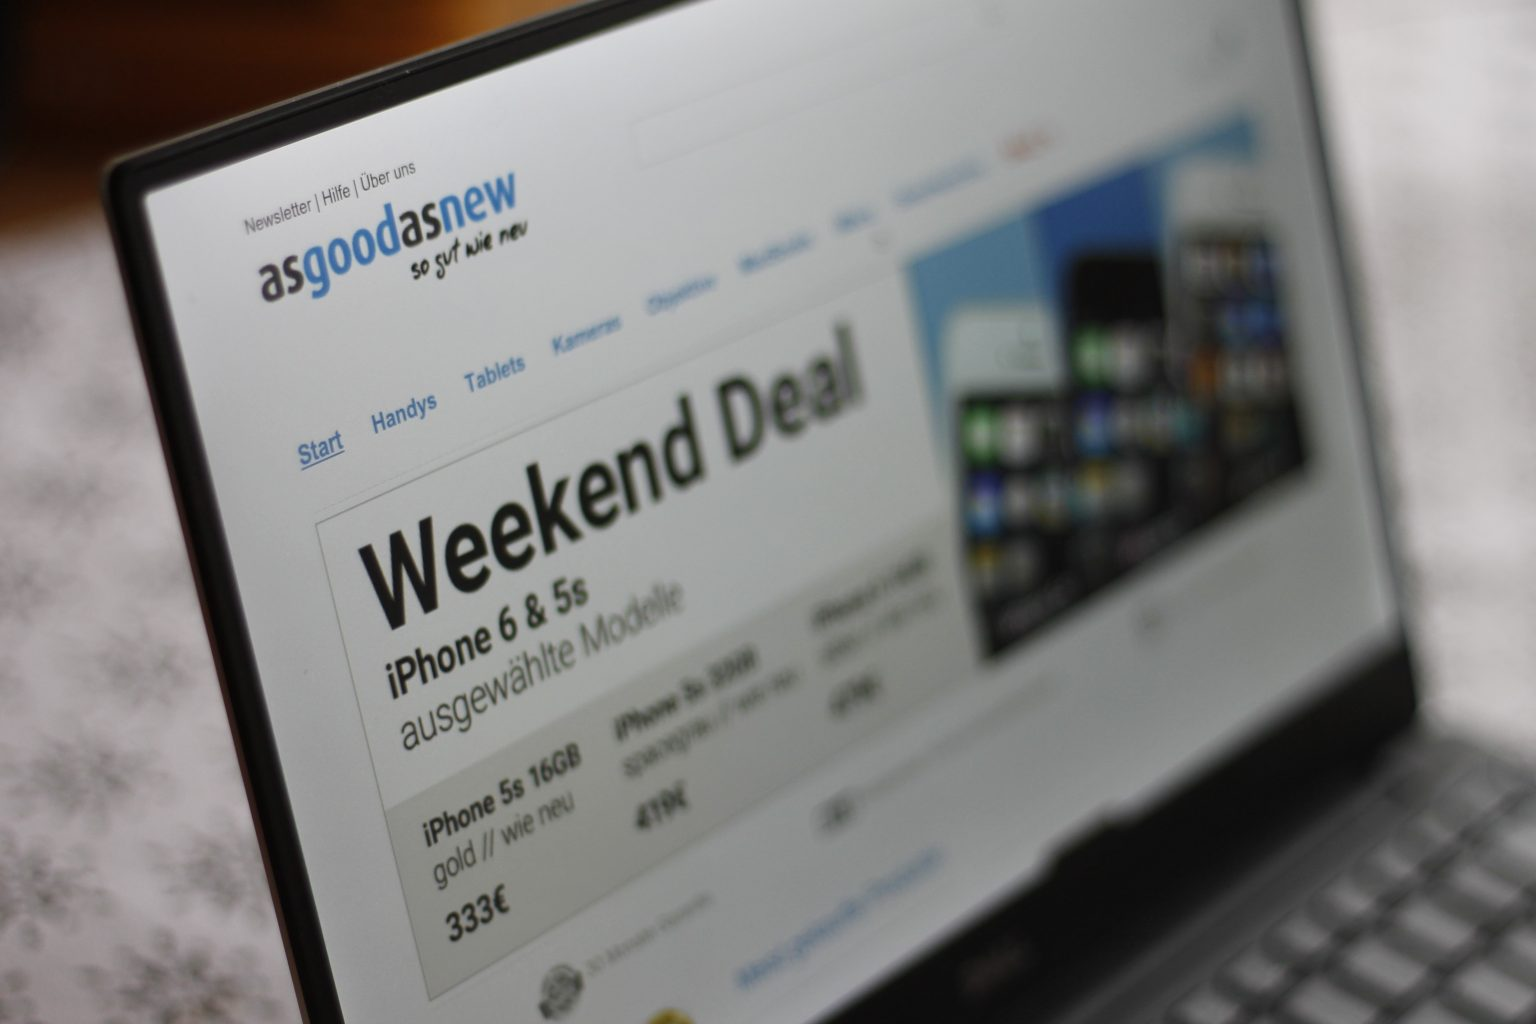 asgoodasnew weekend deal